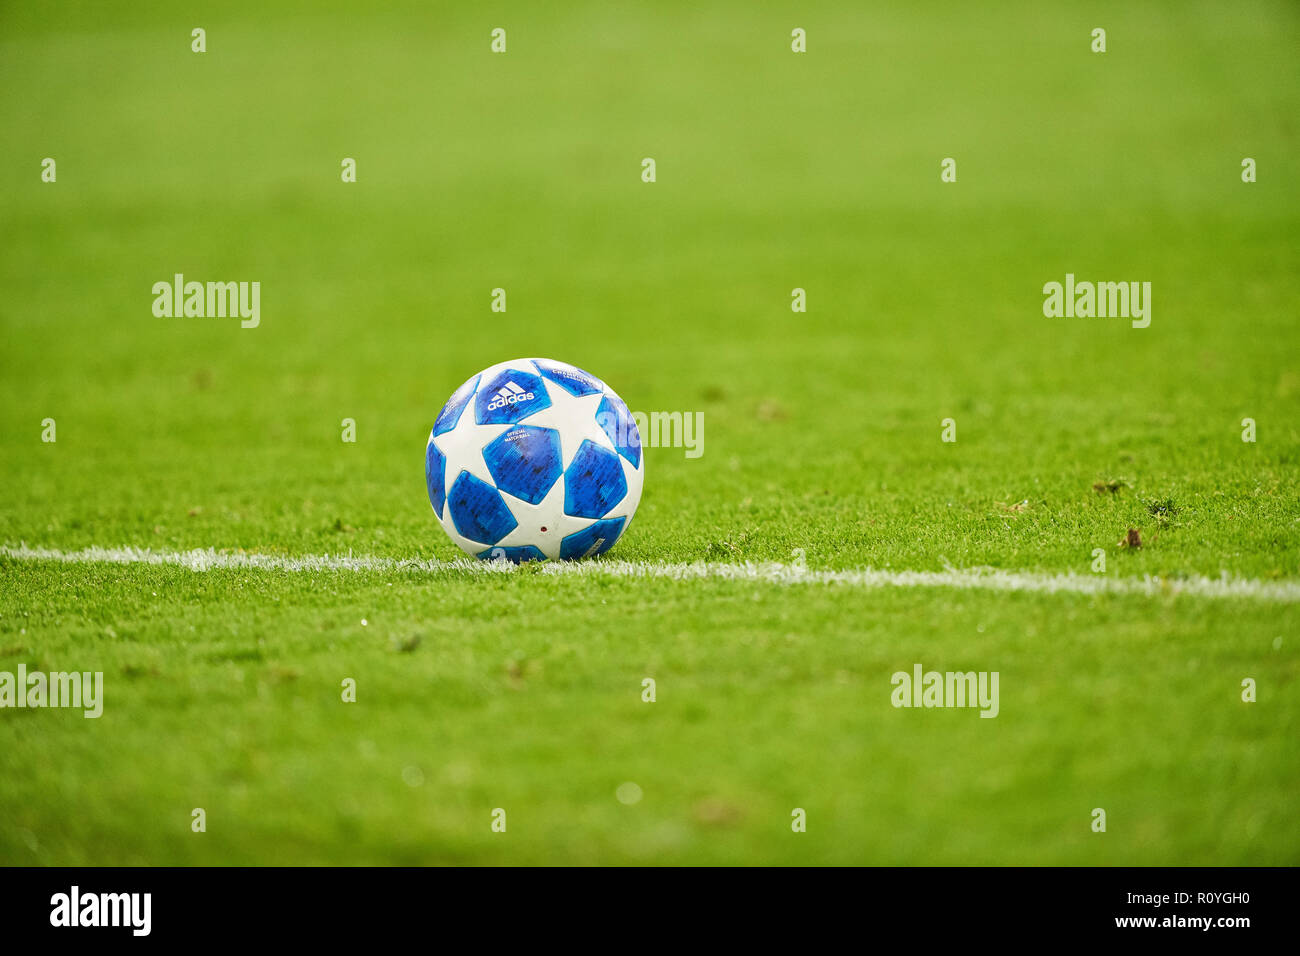 Uefa Champions League Ball Adidas Stock Photos   Uefa Champions ... 9659dc3b39397